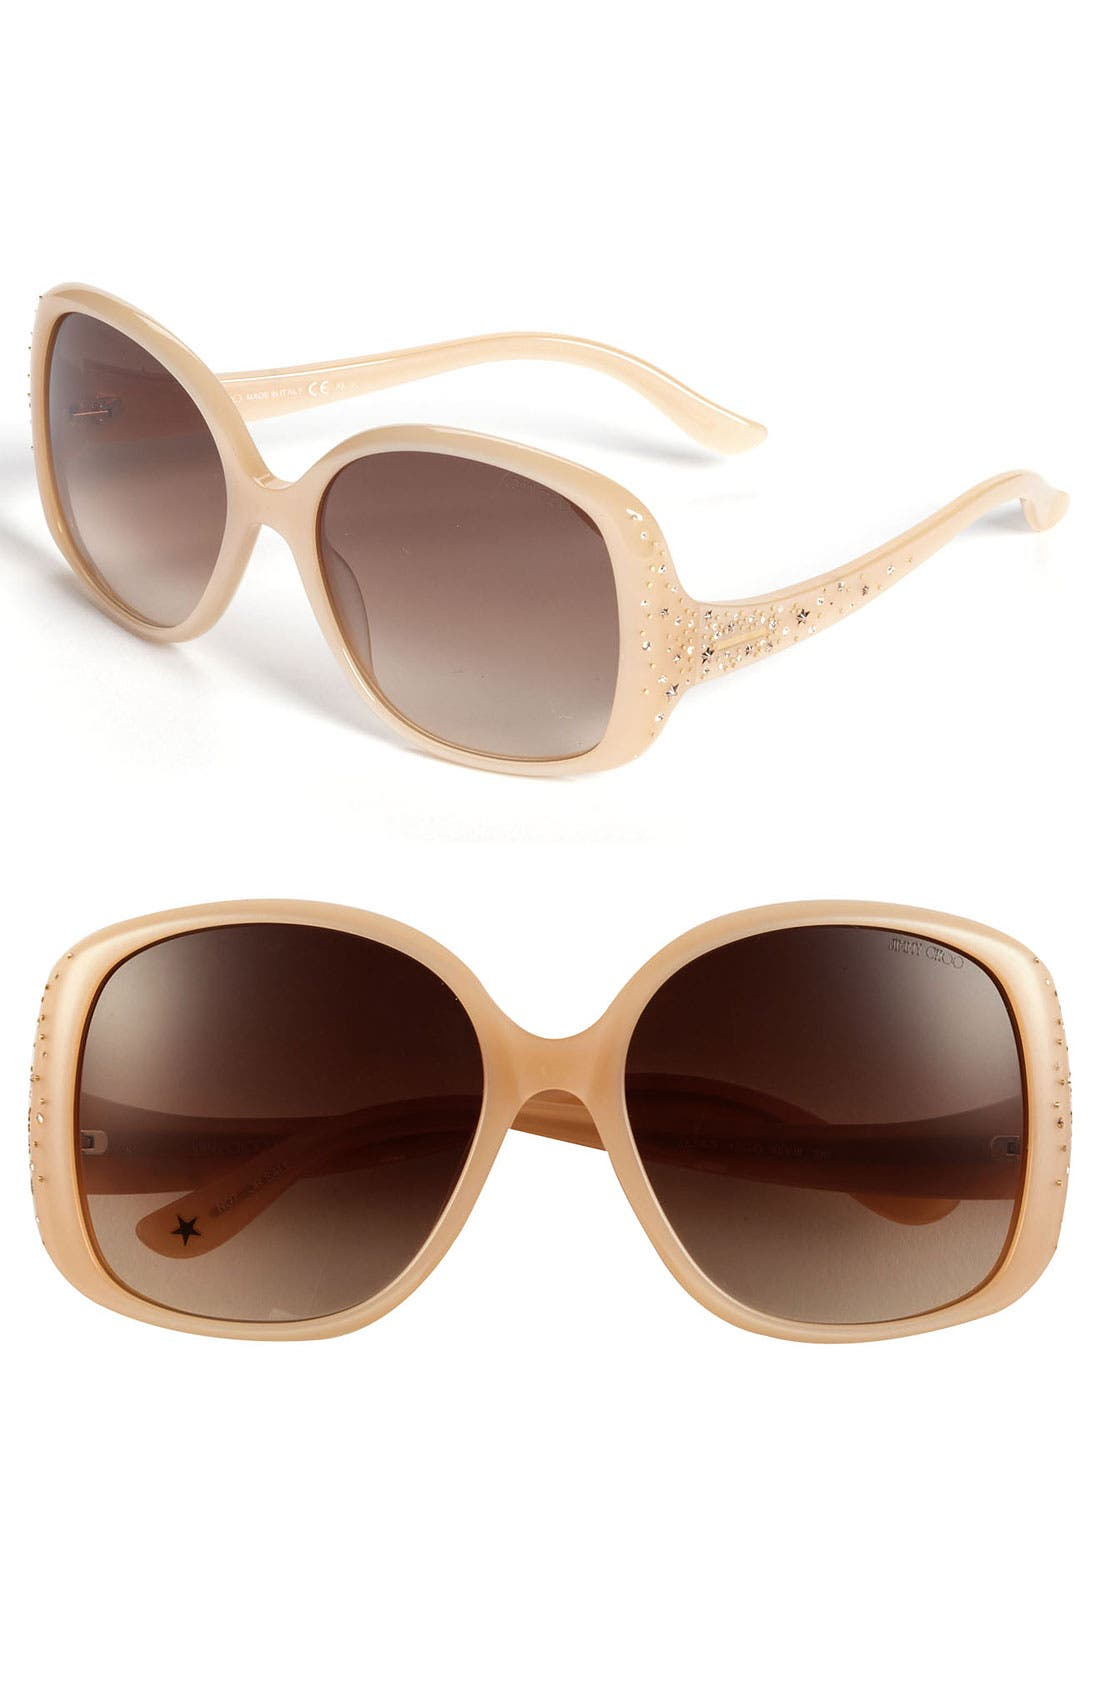 Alternate Image 1 Selected - Jimmy Choo 'Zeta' 58mm Crystal Temple Sunglasses